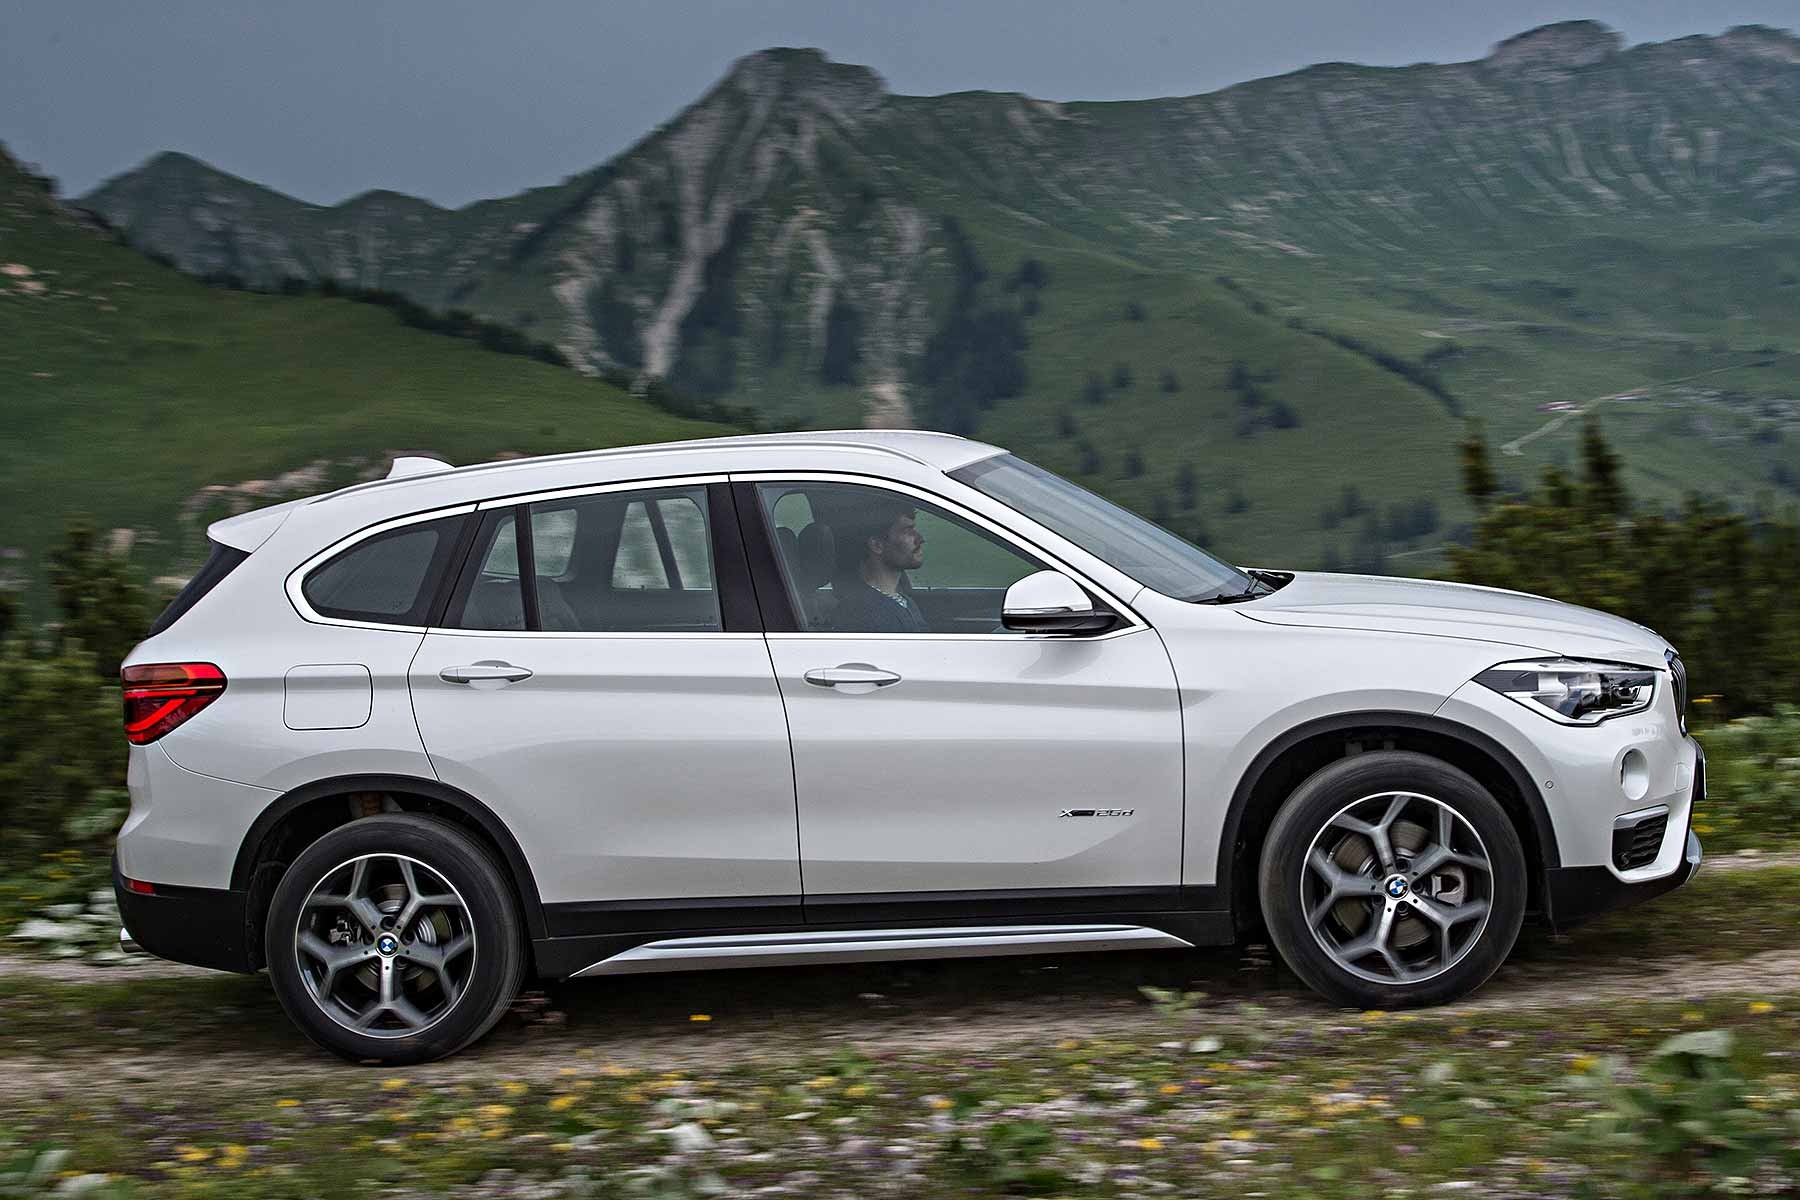 Bmw X1 Review 2015 First Drive Motoring Research